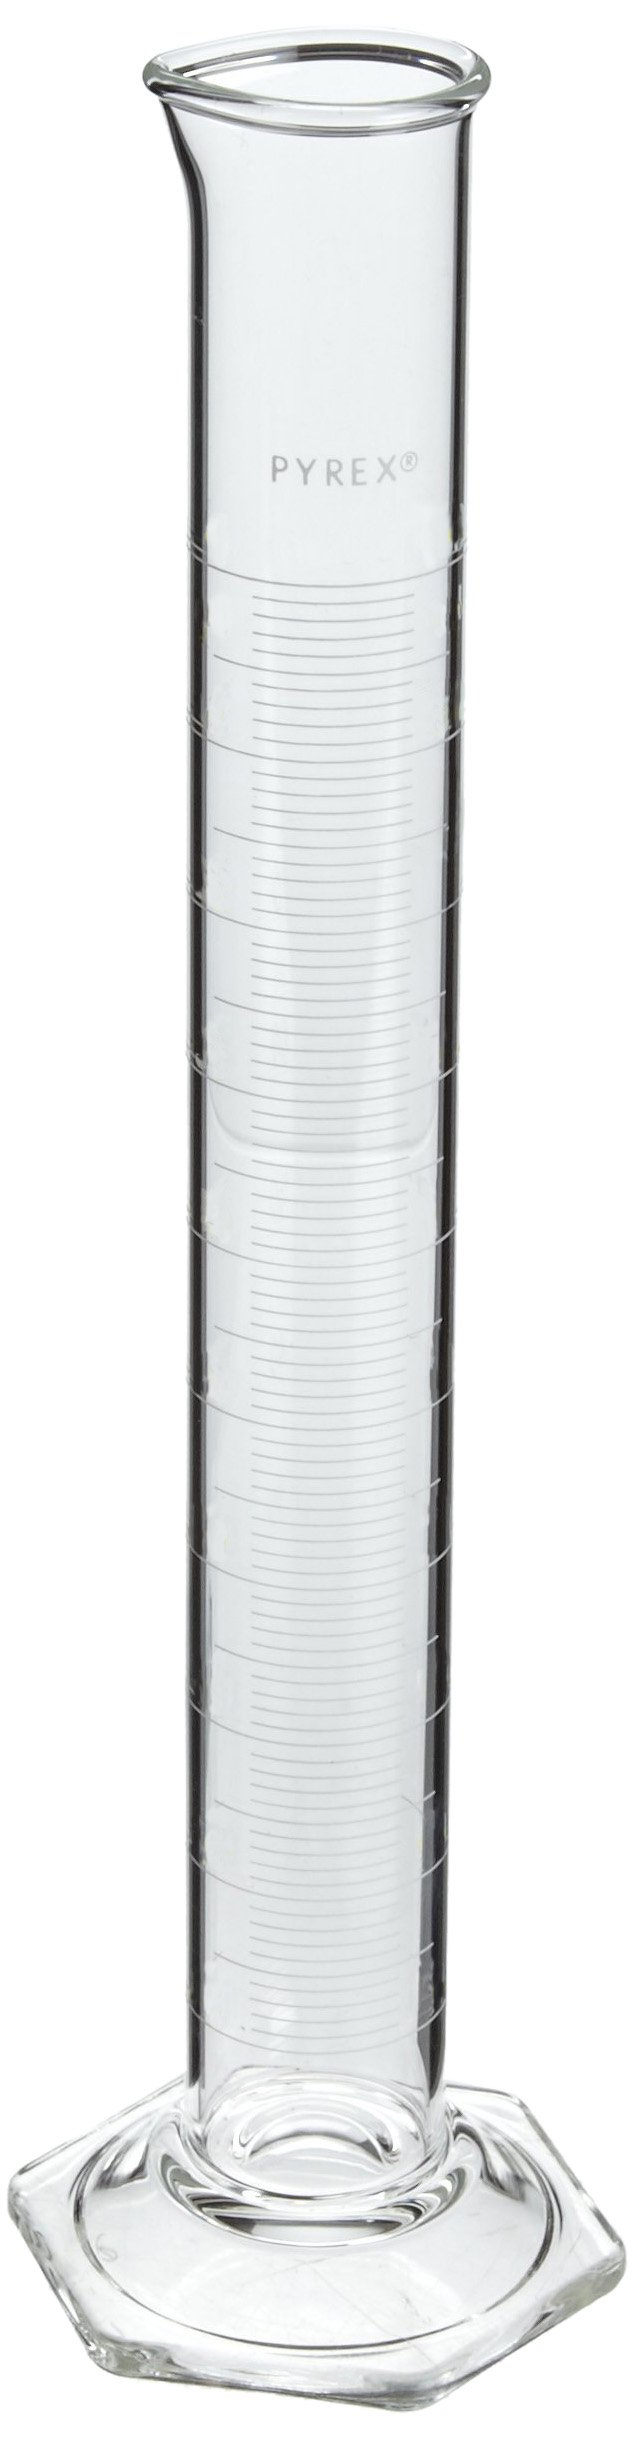 Corning Pyrex 3025-10 Glass 10mL ''To Contain'' Economy Graduated Double-Metric Calibrated Cylinder